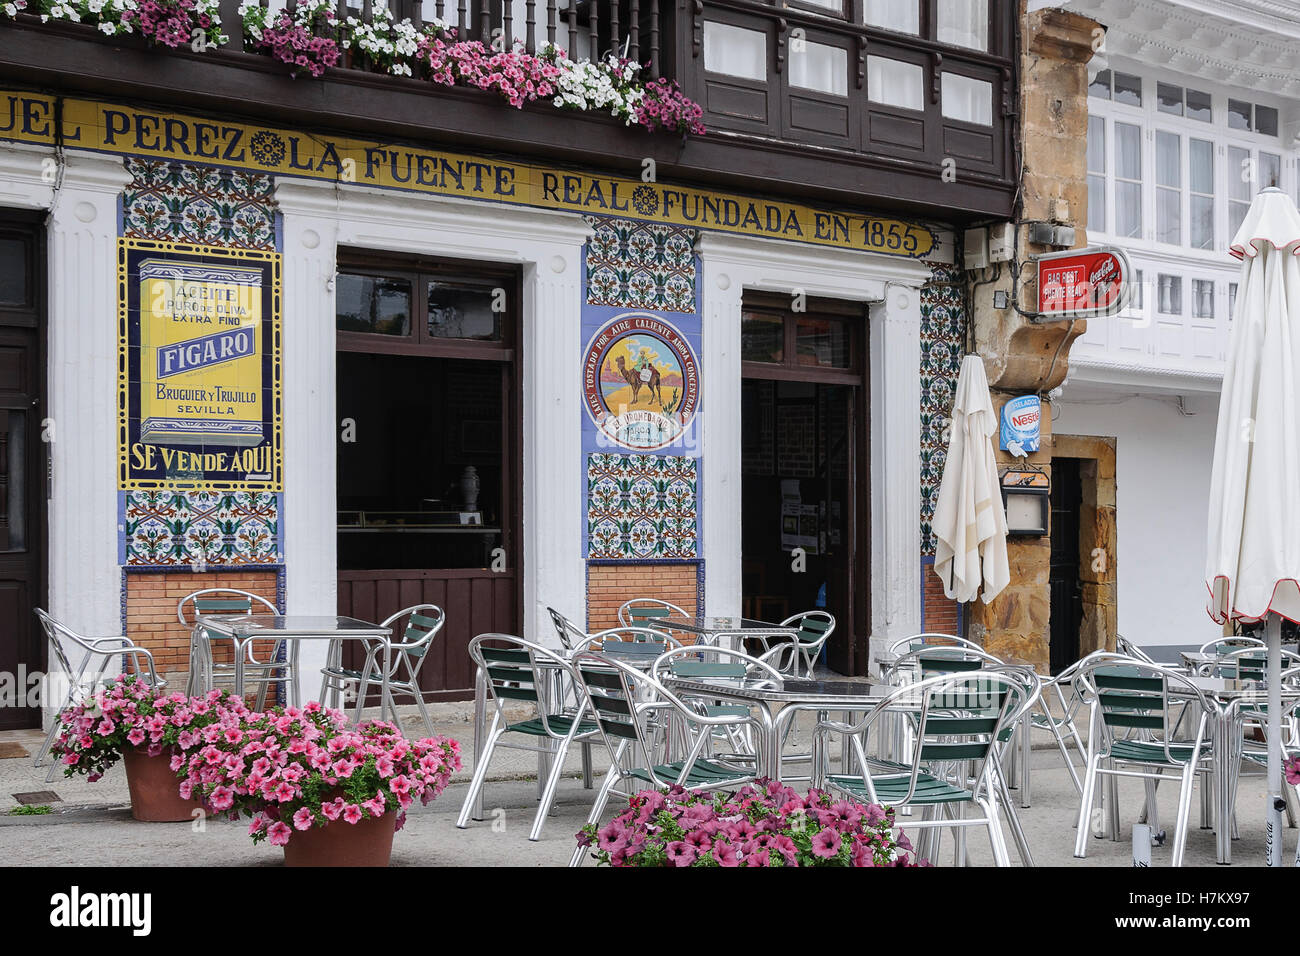 Facade ceramic tiled adverts on the bar La Fuente Real, Comillas, Cantabria, Northern Spain, Europe - Stock Image